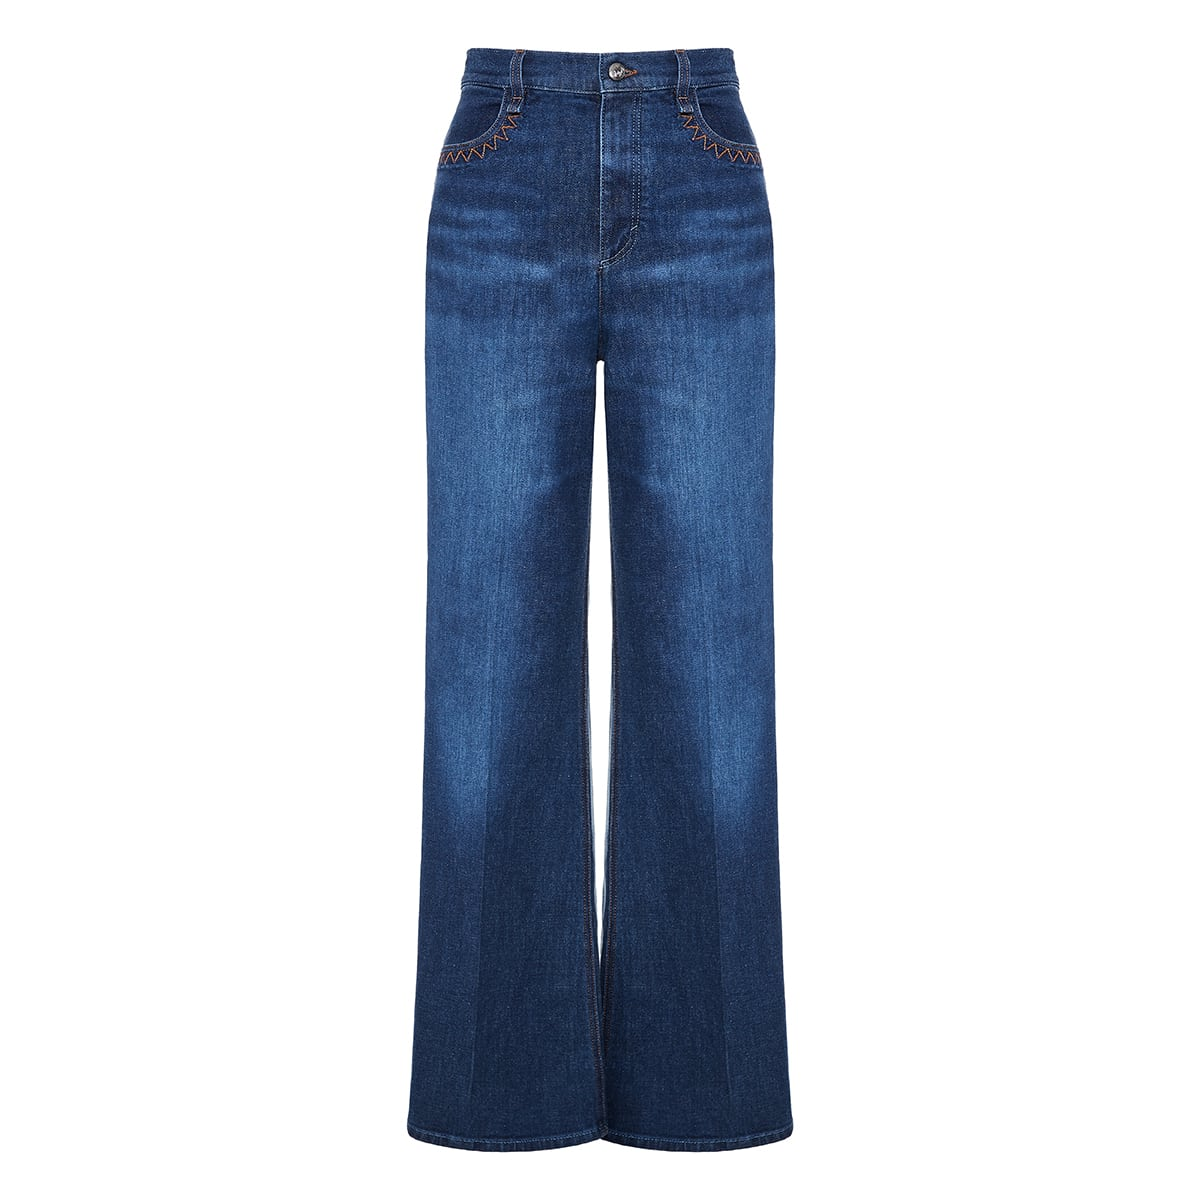 Washed flared jeans